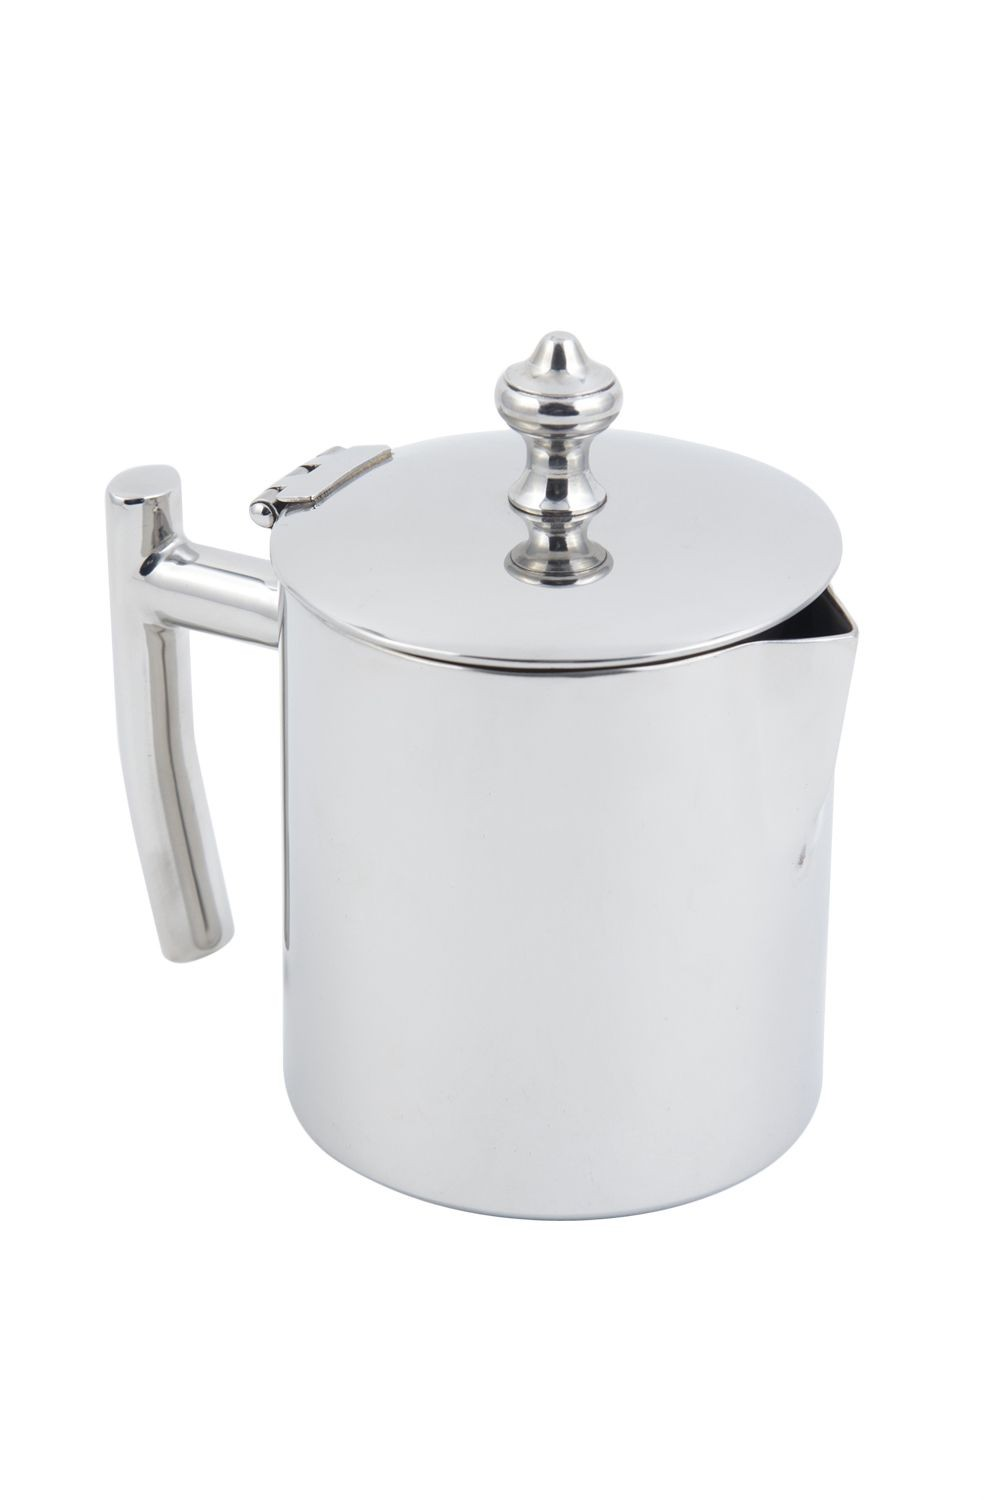 Bon Chef 61310 Empire Collection Stainless Steel Coffee Pot, 16 oz.